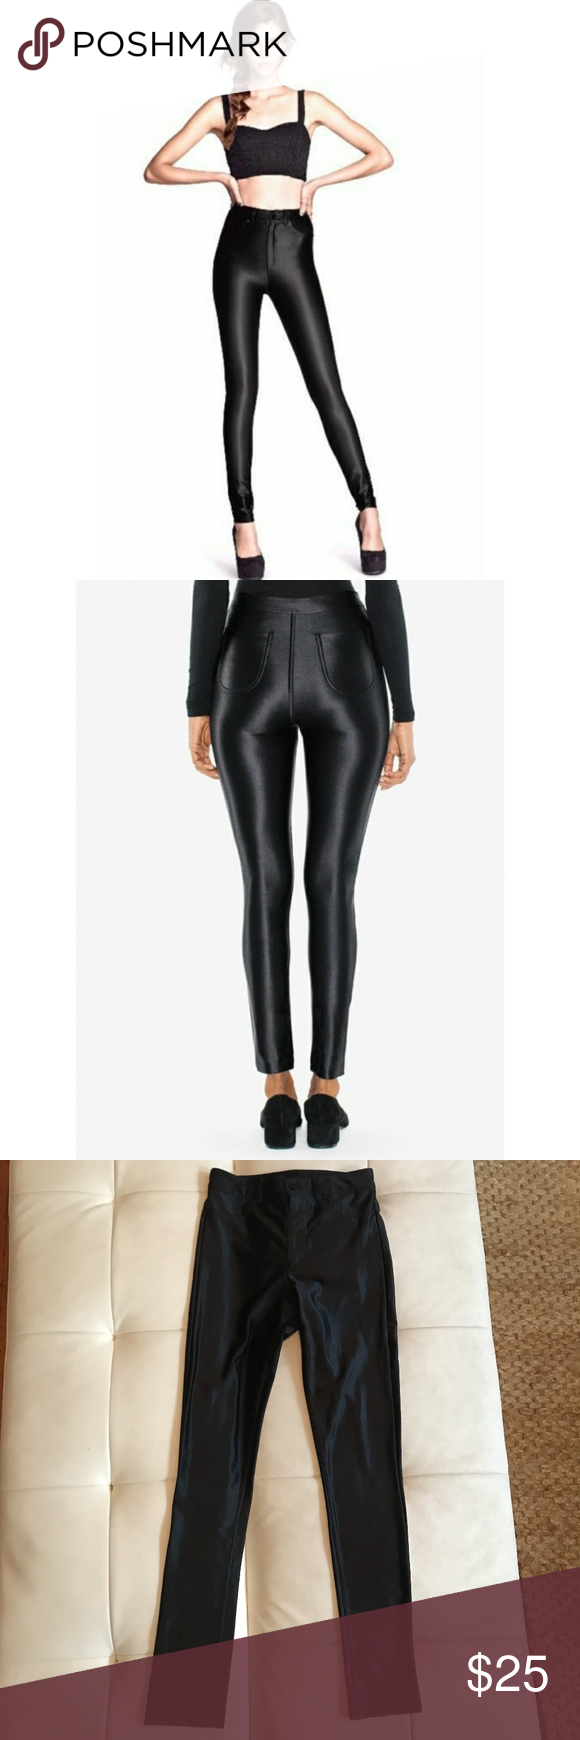 138812f6e0b Shiny Black Disco Pants High waisted sleek fit